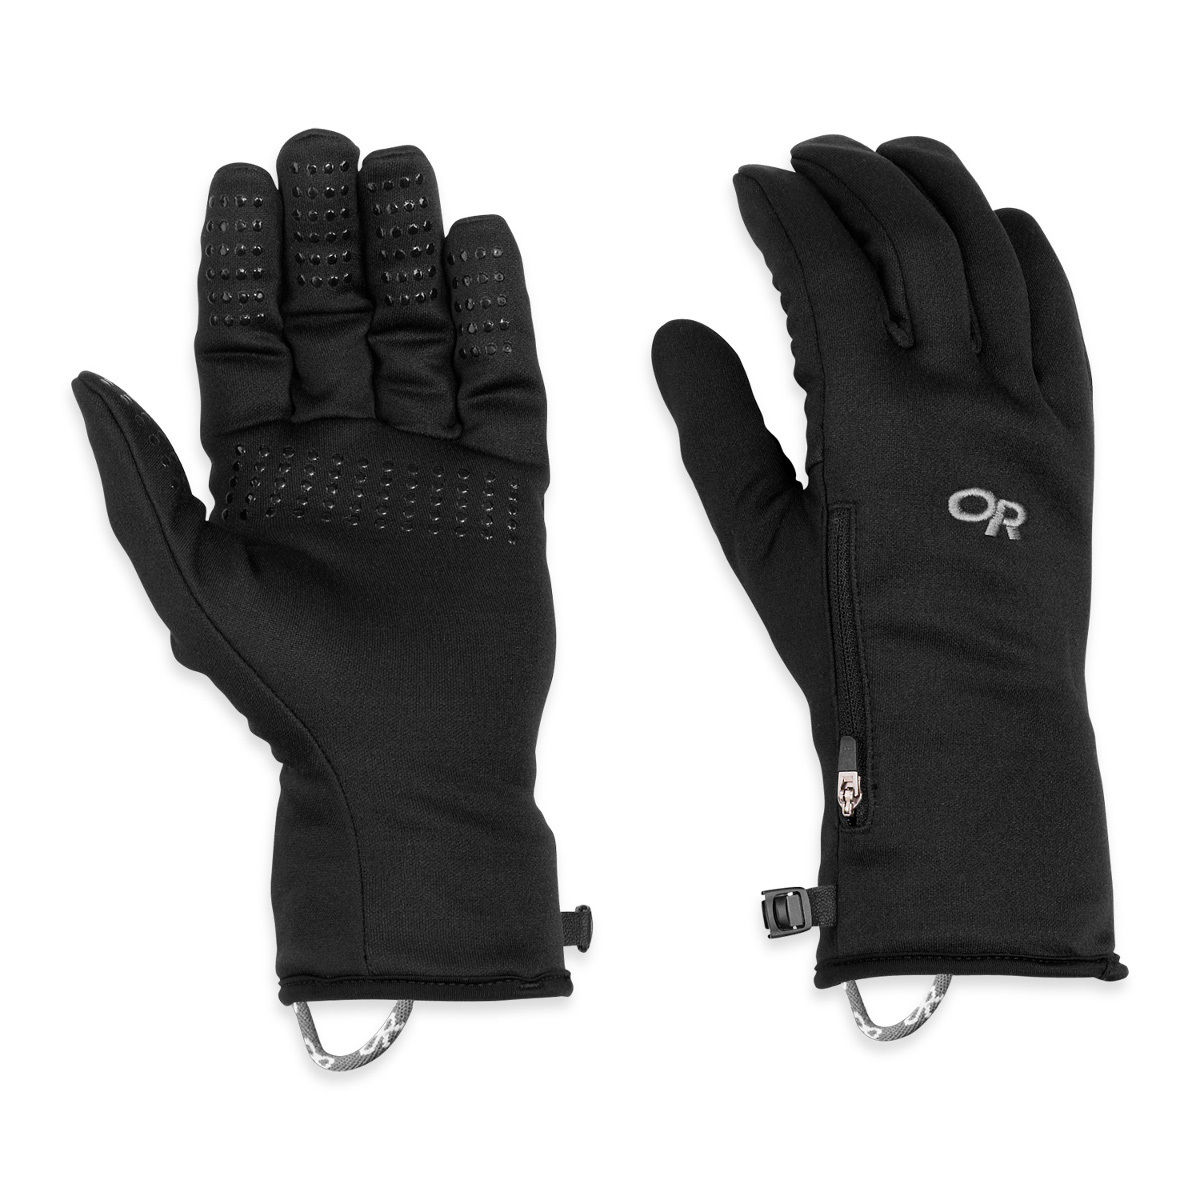 photo: Outdoor Research Women's VersaLiner insulated glove/mitten